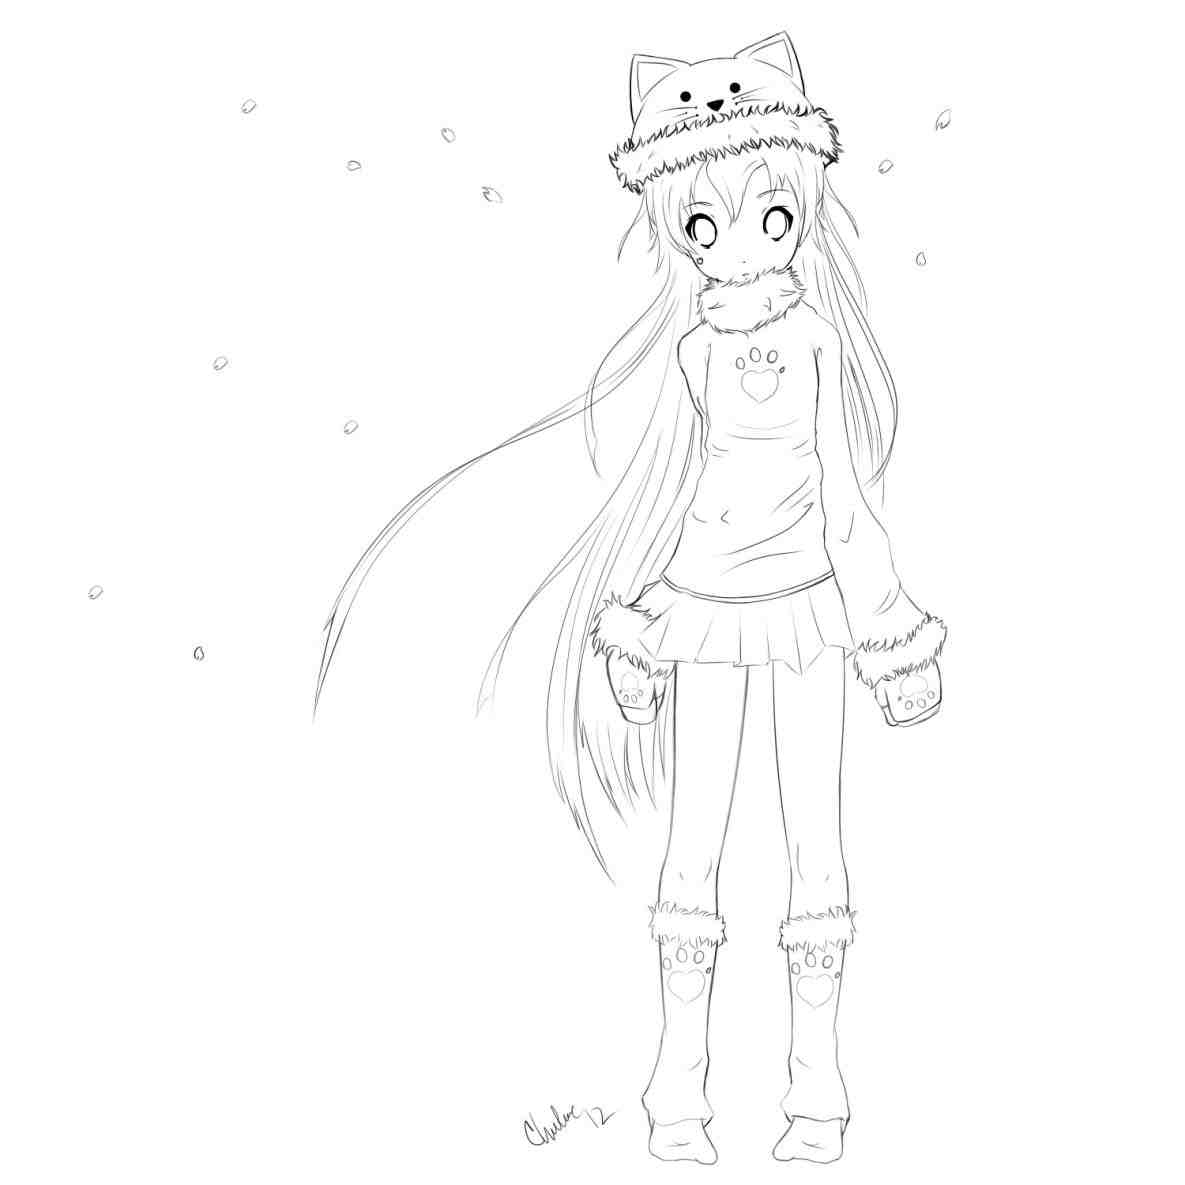 1185x1185 Gallery Pictures Easy Drawings Of Anime Girls Whole Body To Draw